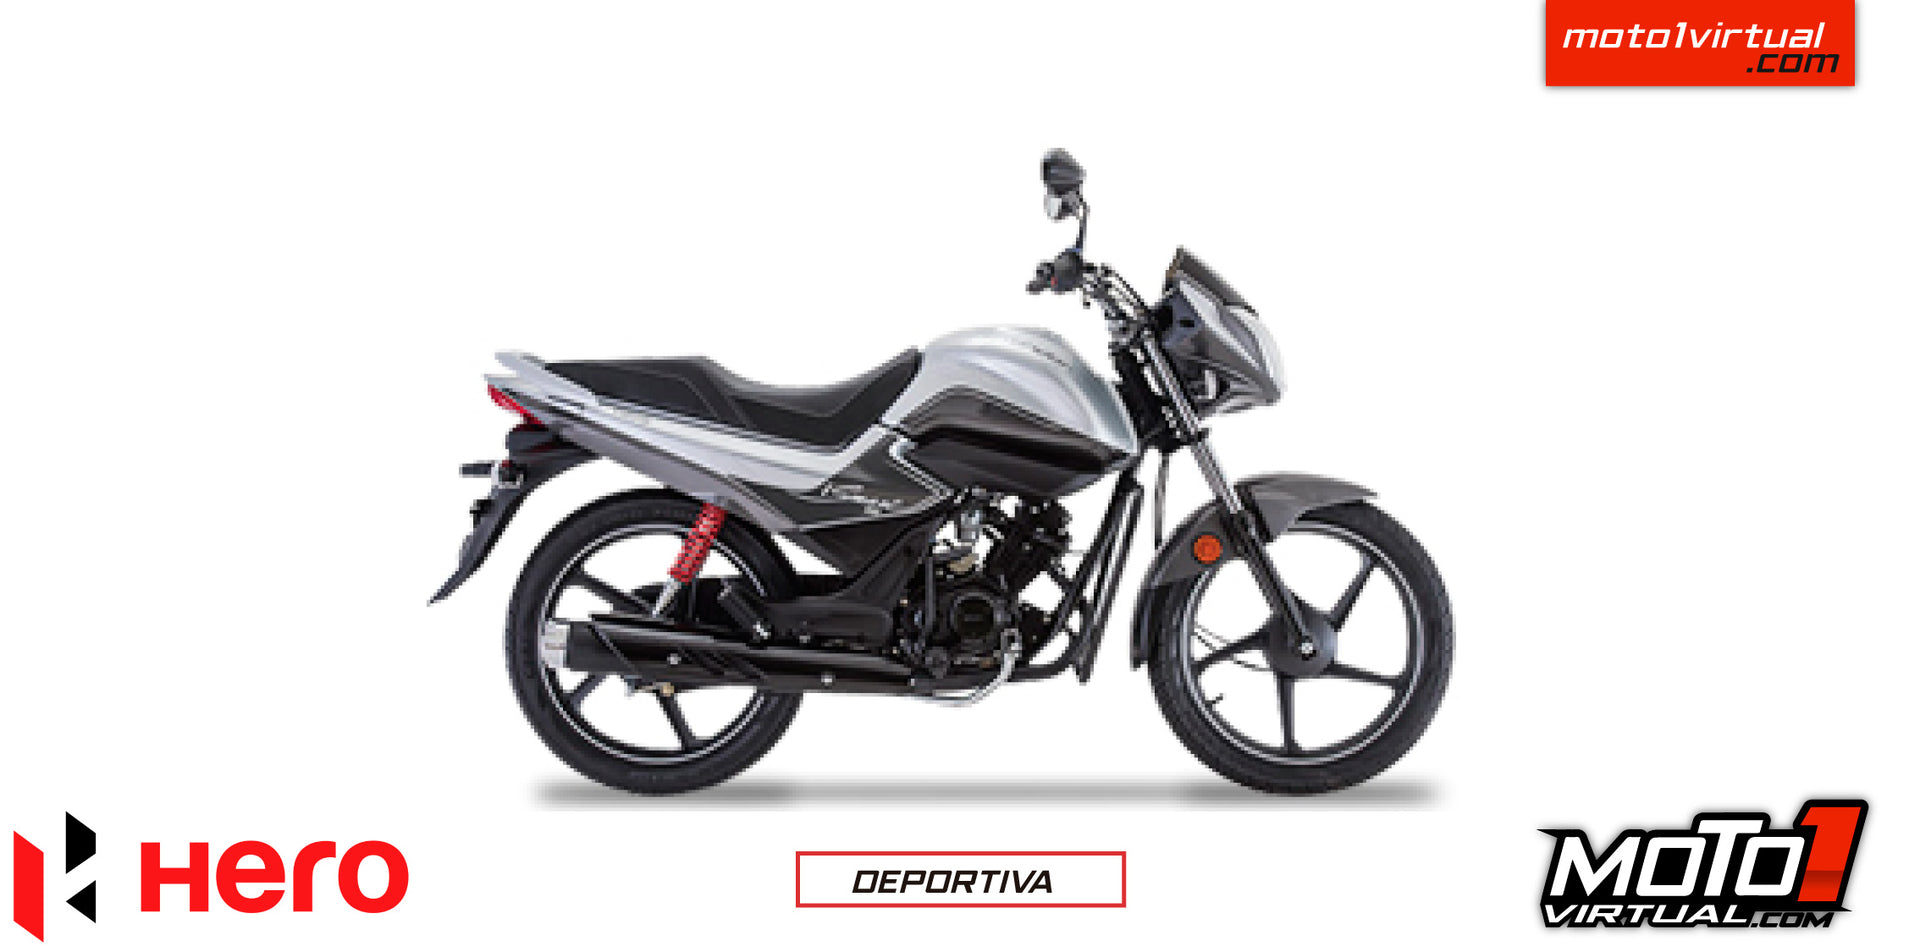 Hero SPLENDOR I3S 110 - Motouno